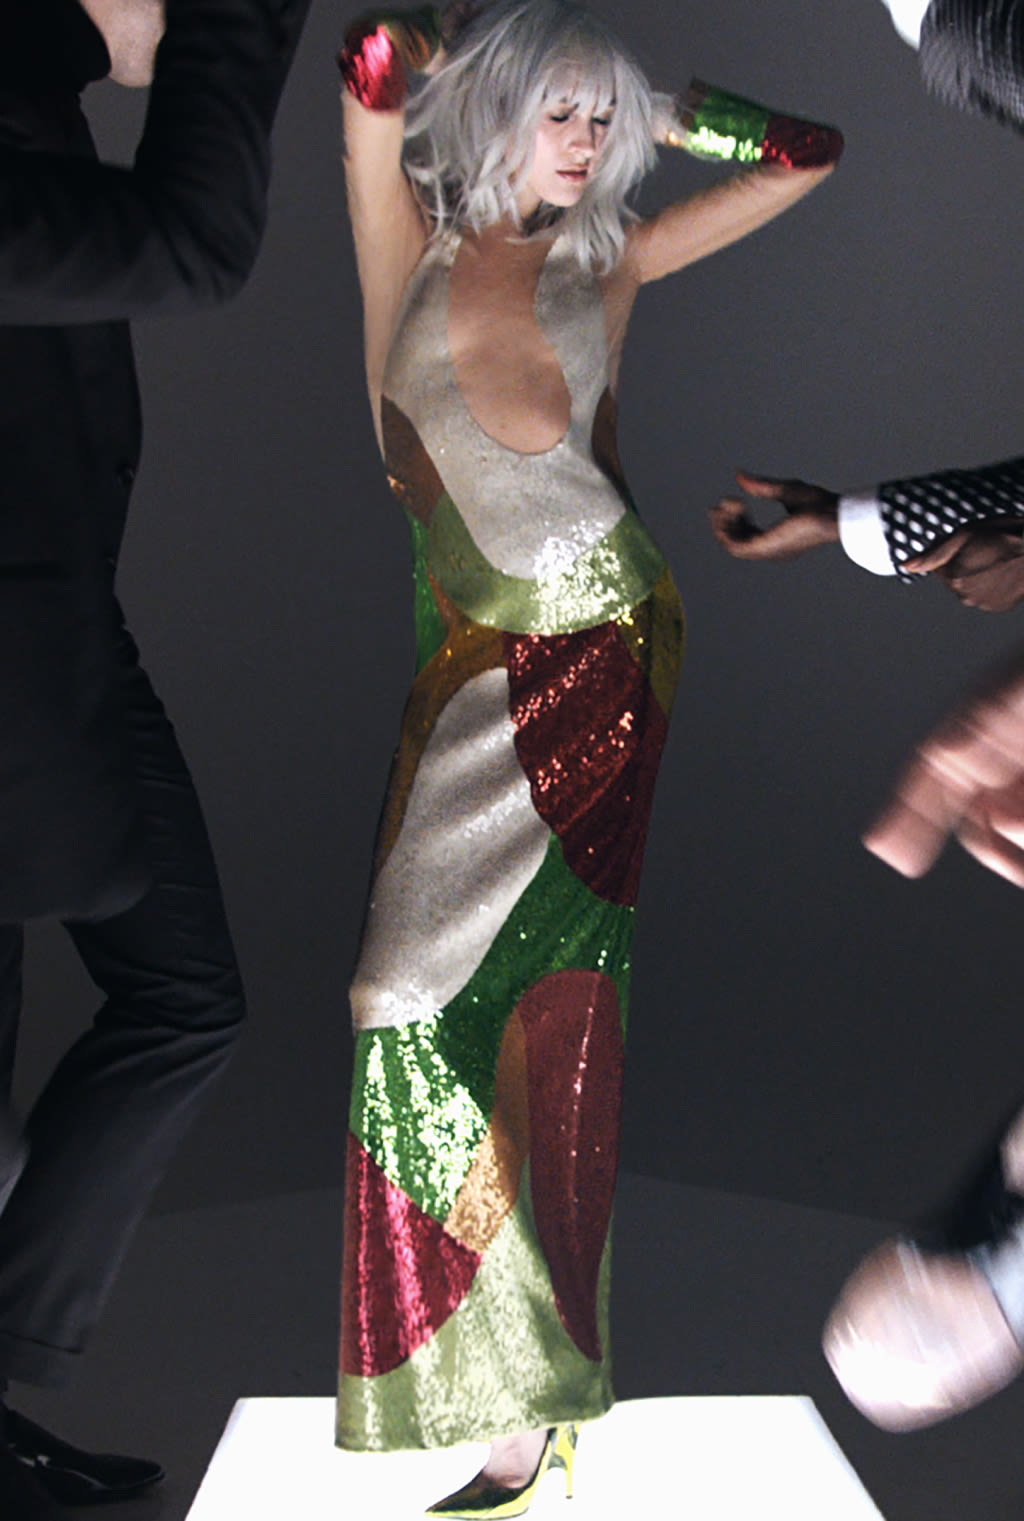 ede5ee12c1ec All The Gifs From The Tom Ford Spring 2016 Music